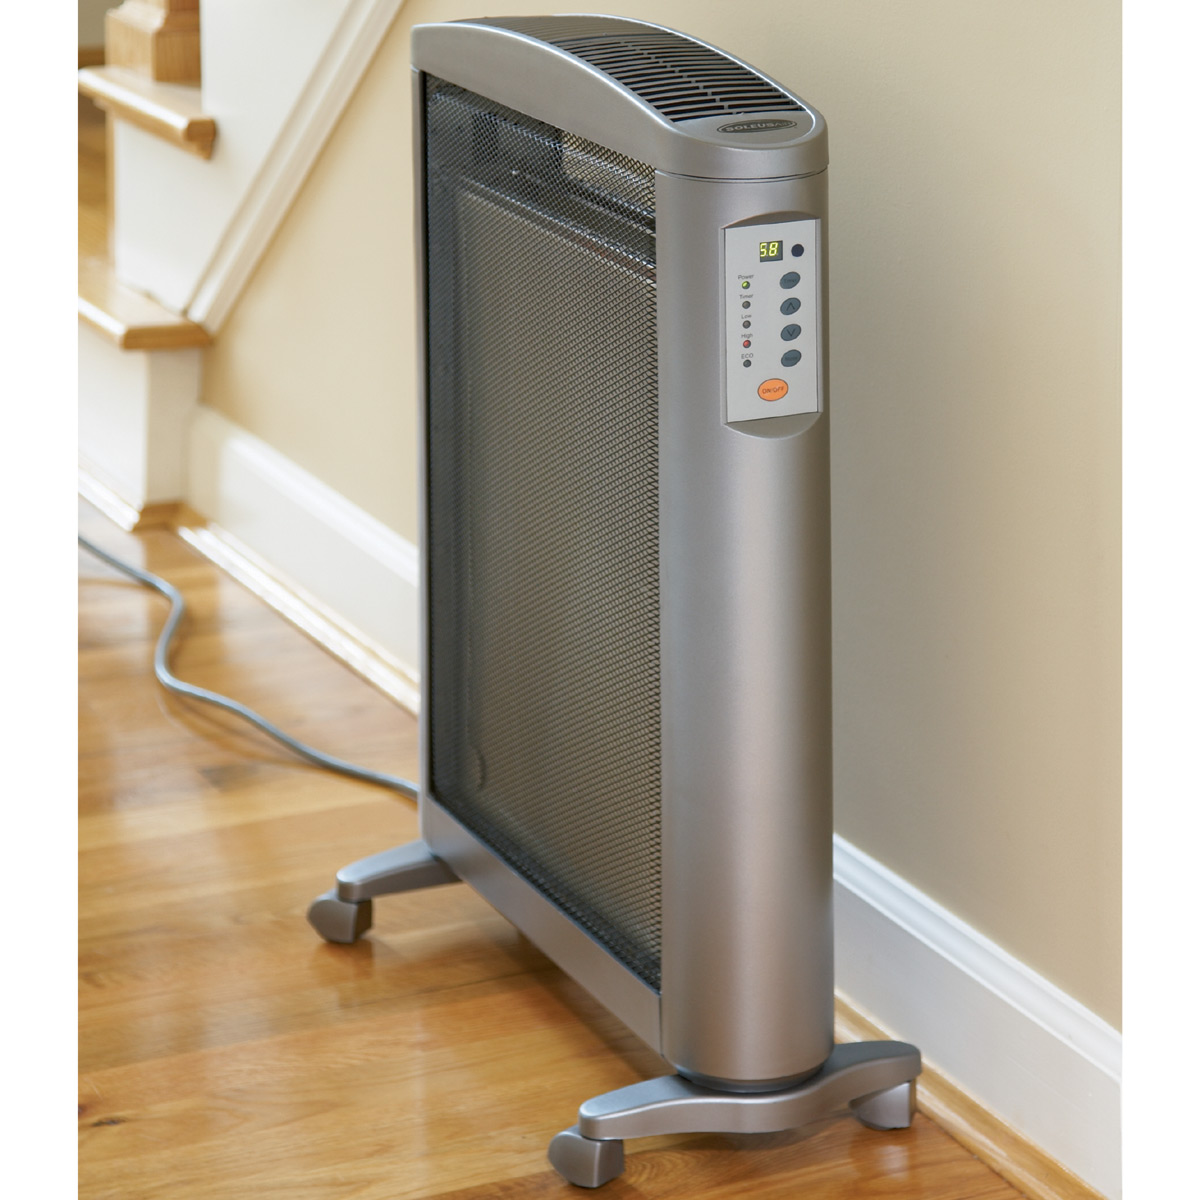 Headline for What are the Top-Rated Portable Micathermic Panel Heaters in 2014?